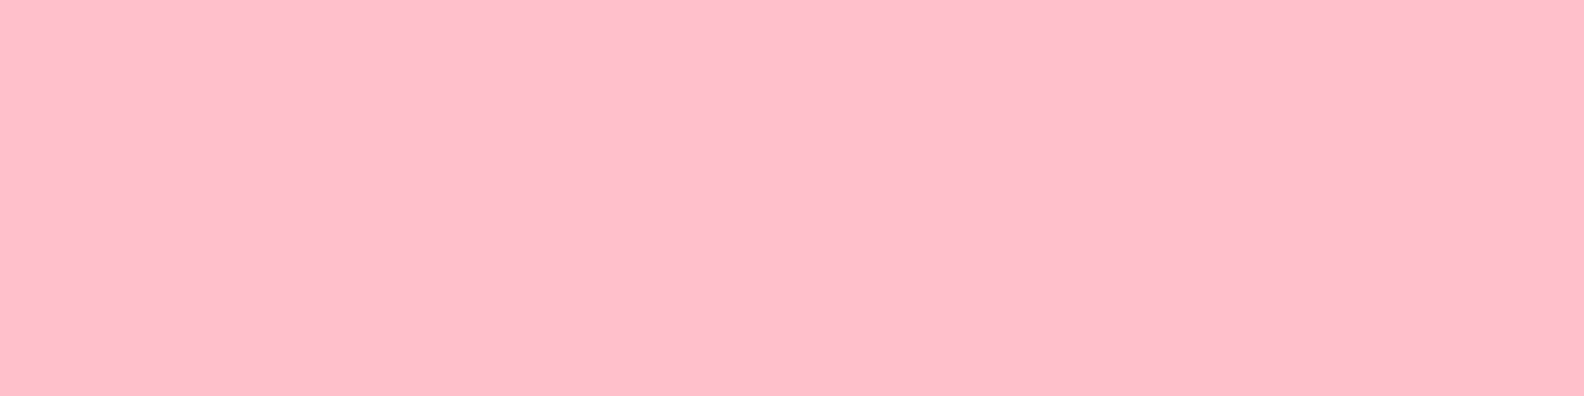 1584x396 Pink Solid Color Background